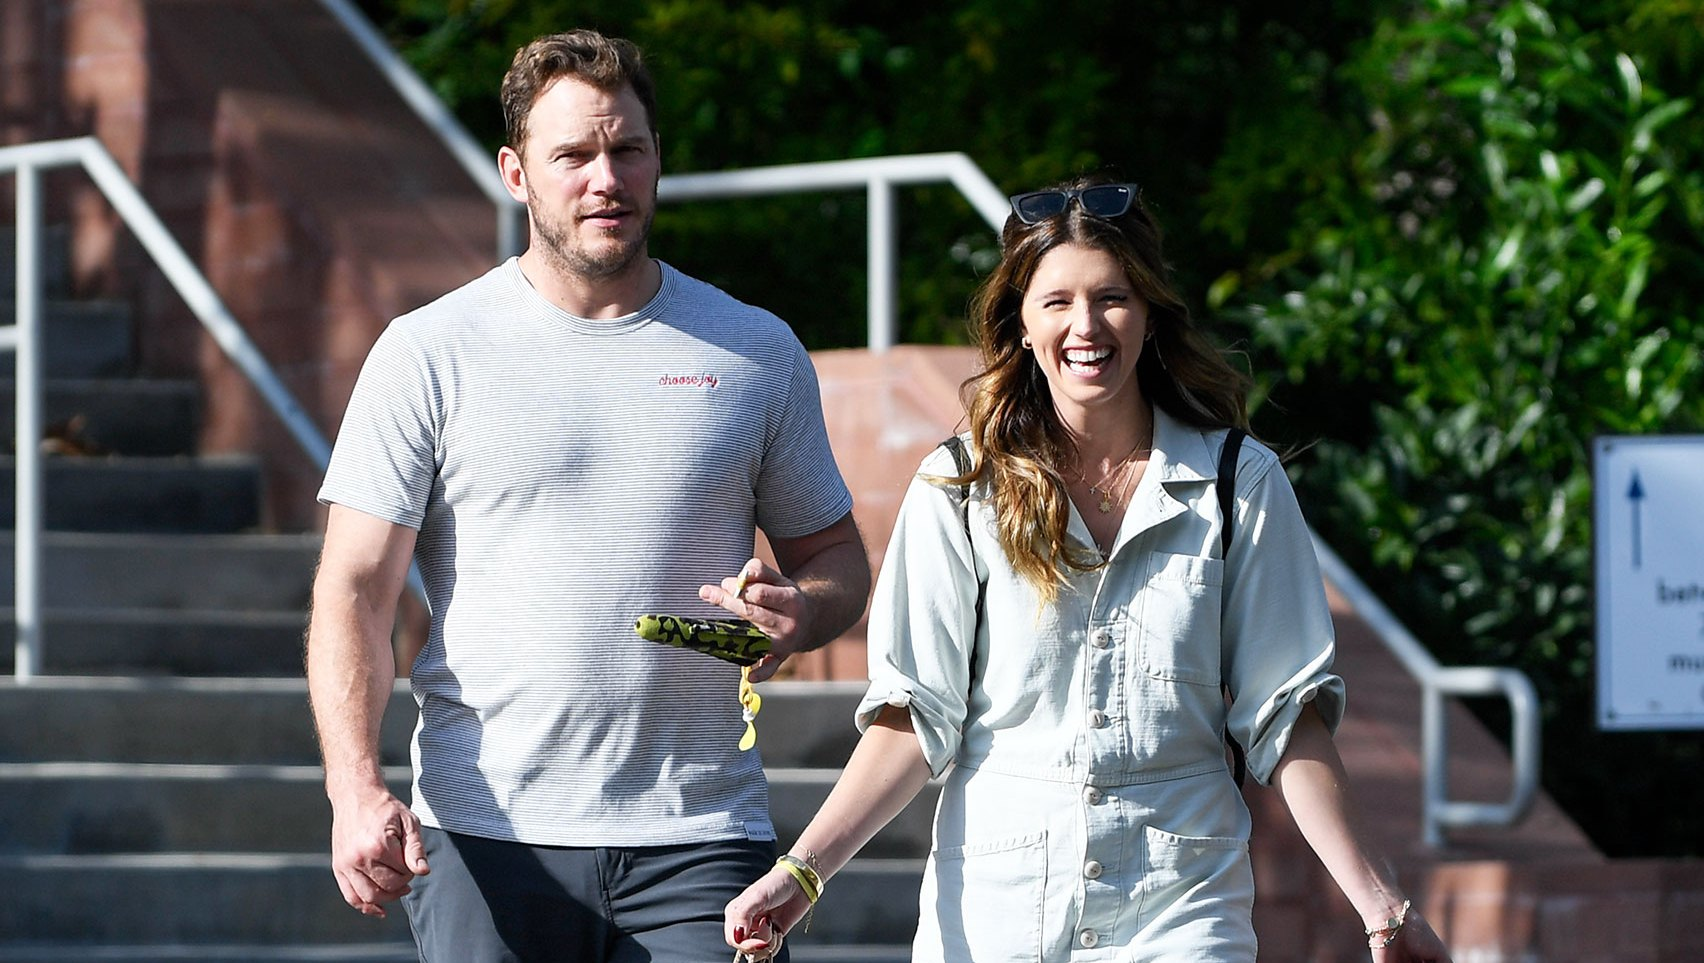 Chris Pratt Wants 'Lots of Kids' After Engagement to Katherine Schwarzenegger